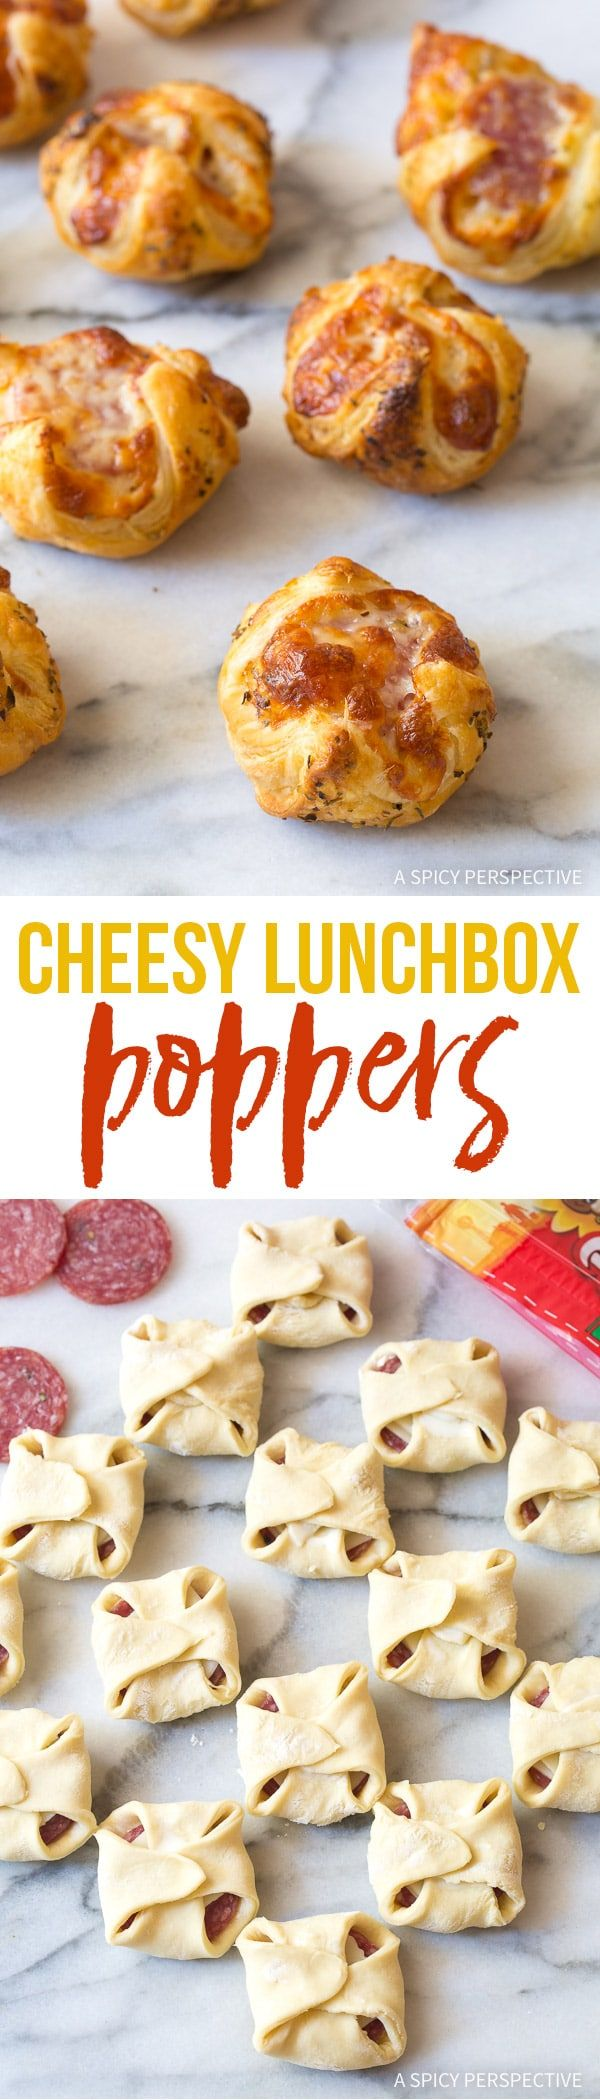 Fabulous Back to School Lunchbox ideas with @Borden_Cheese #BordenLunchLove